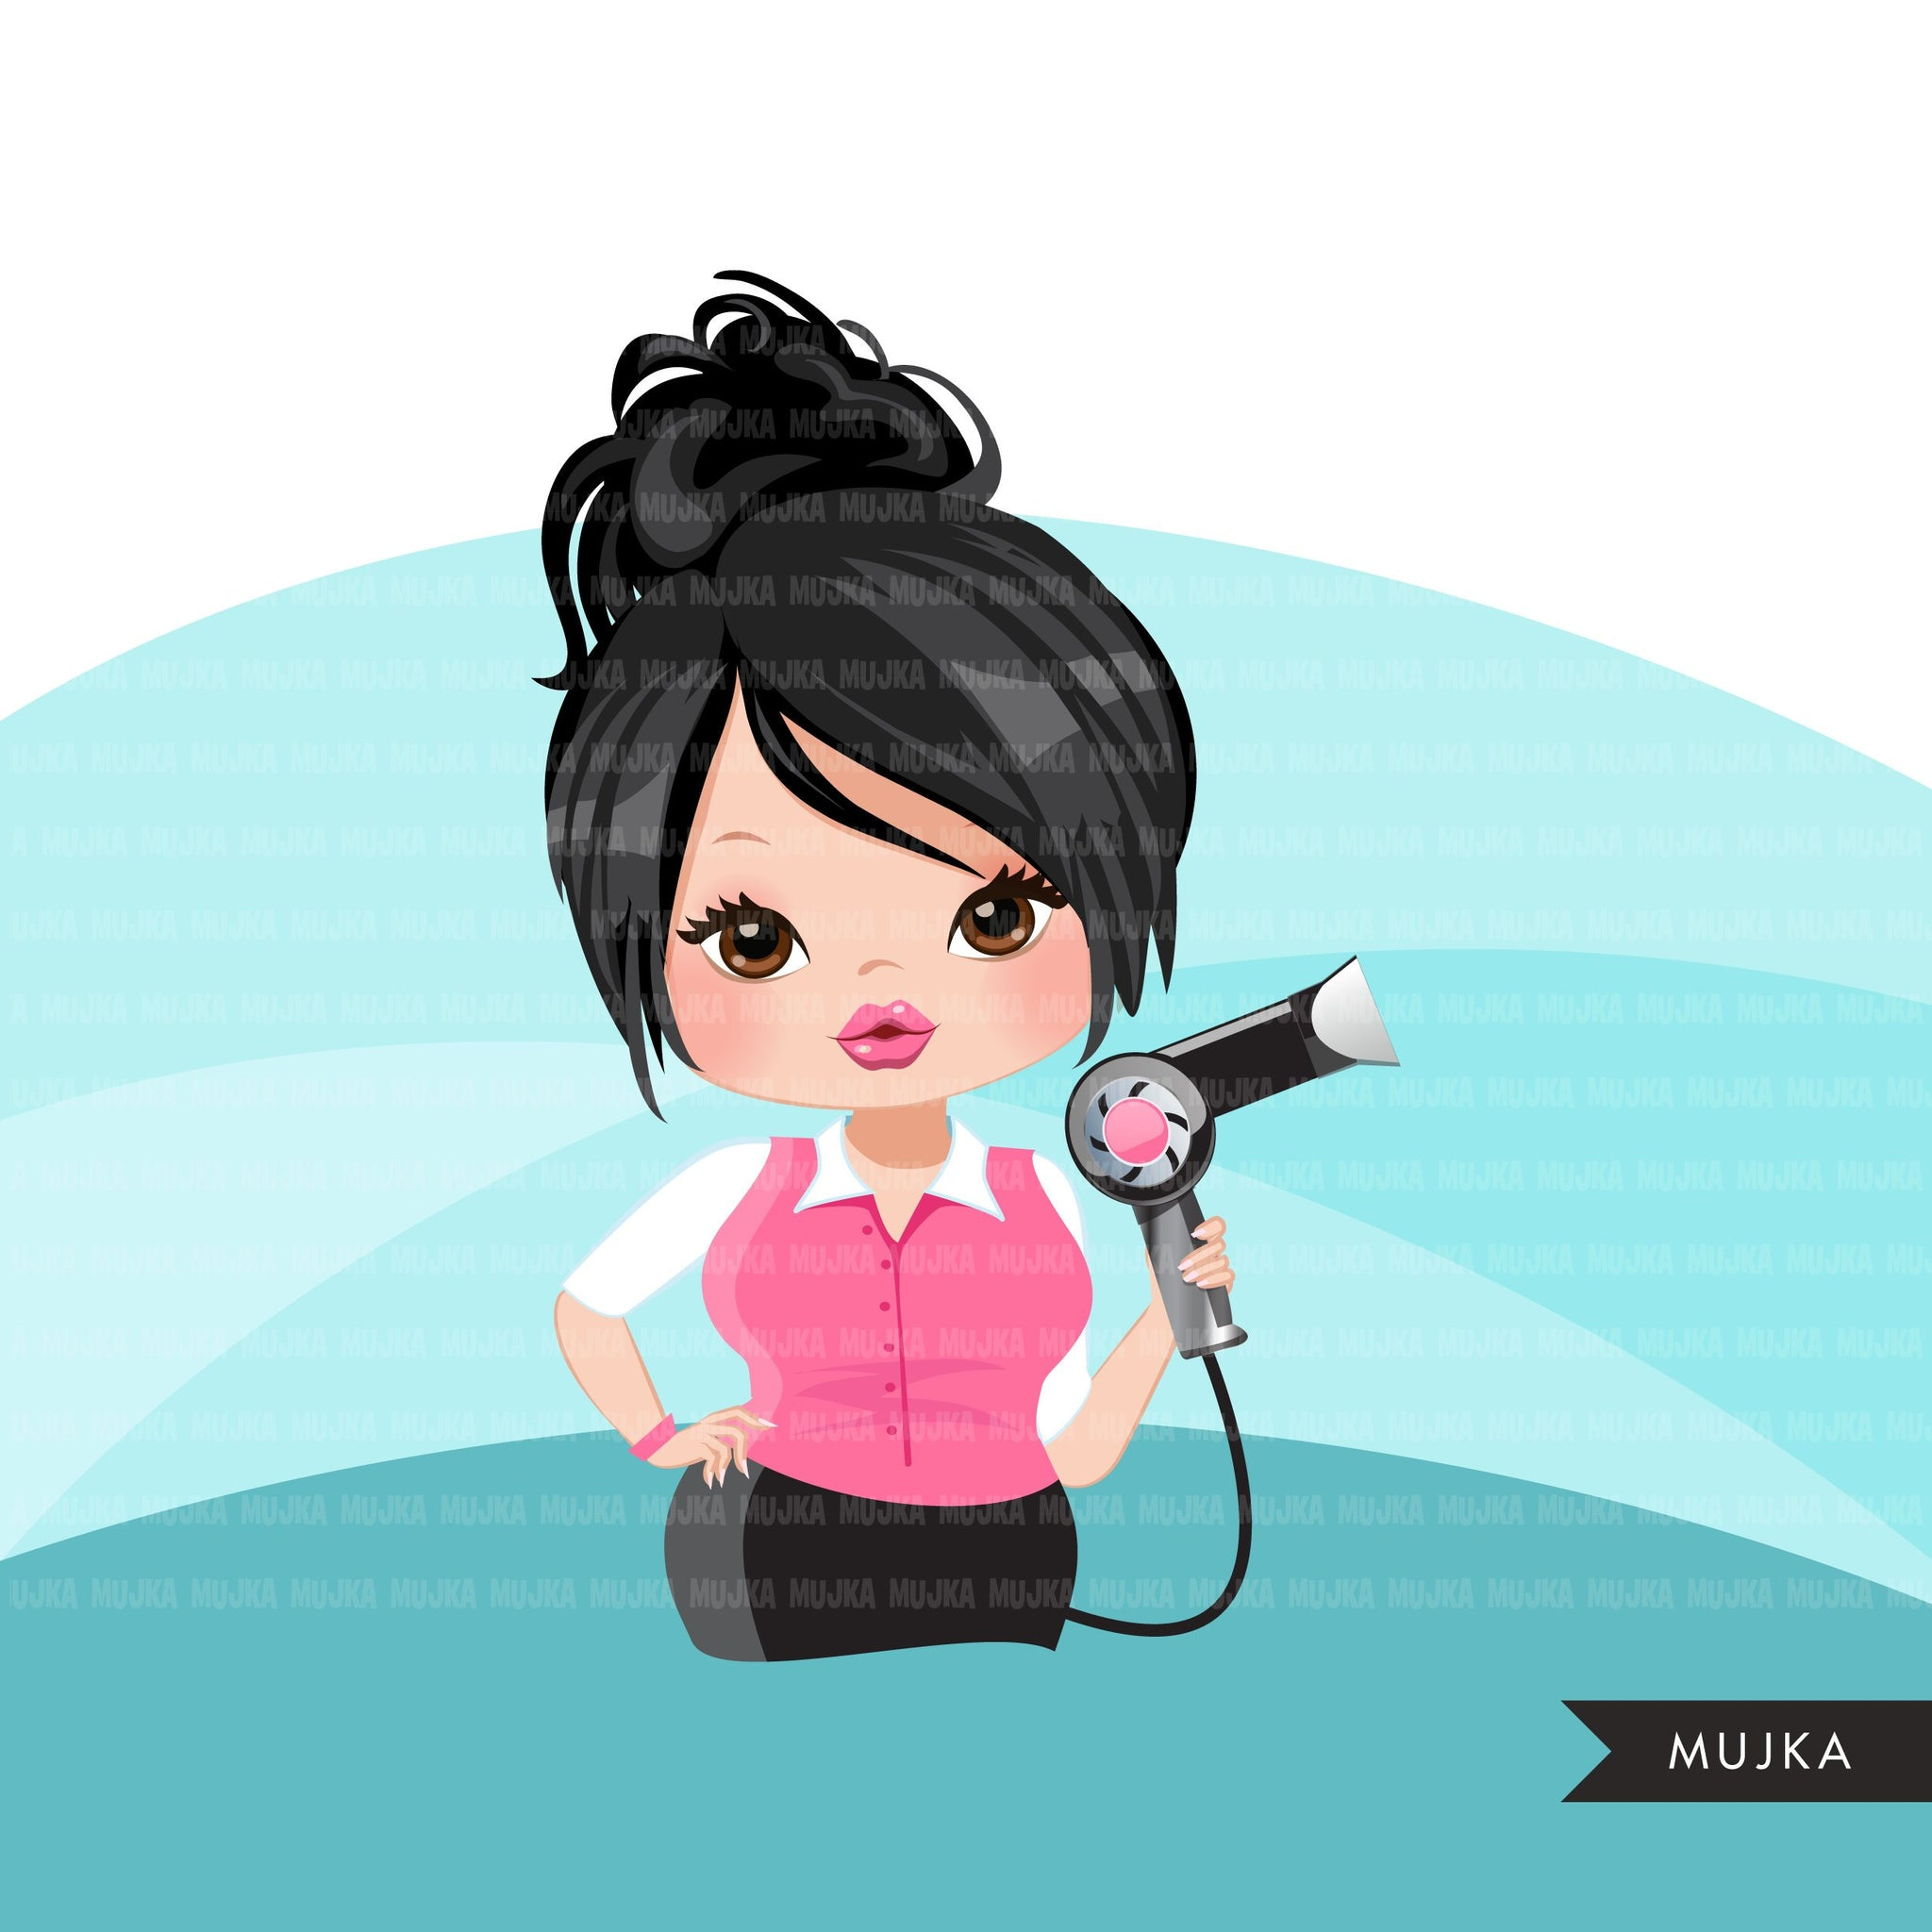 Hair stylist woman clipart avatar with hairdryer, print and cut, shop logo boss hairdresser clip art graphics